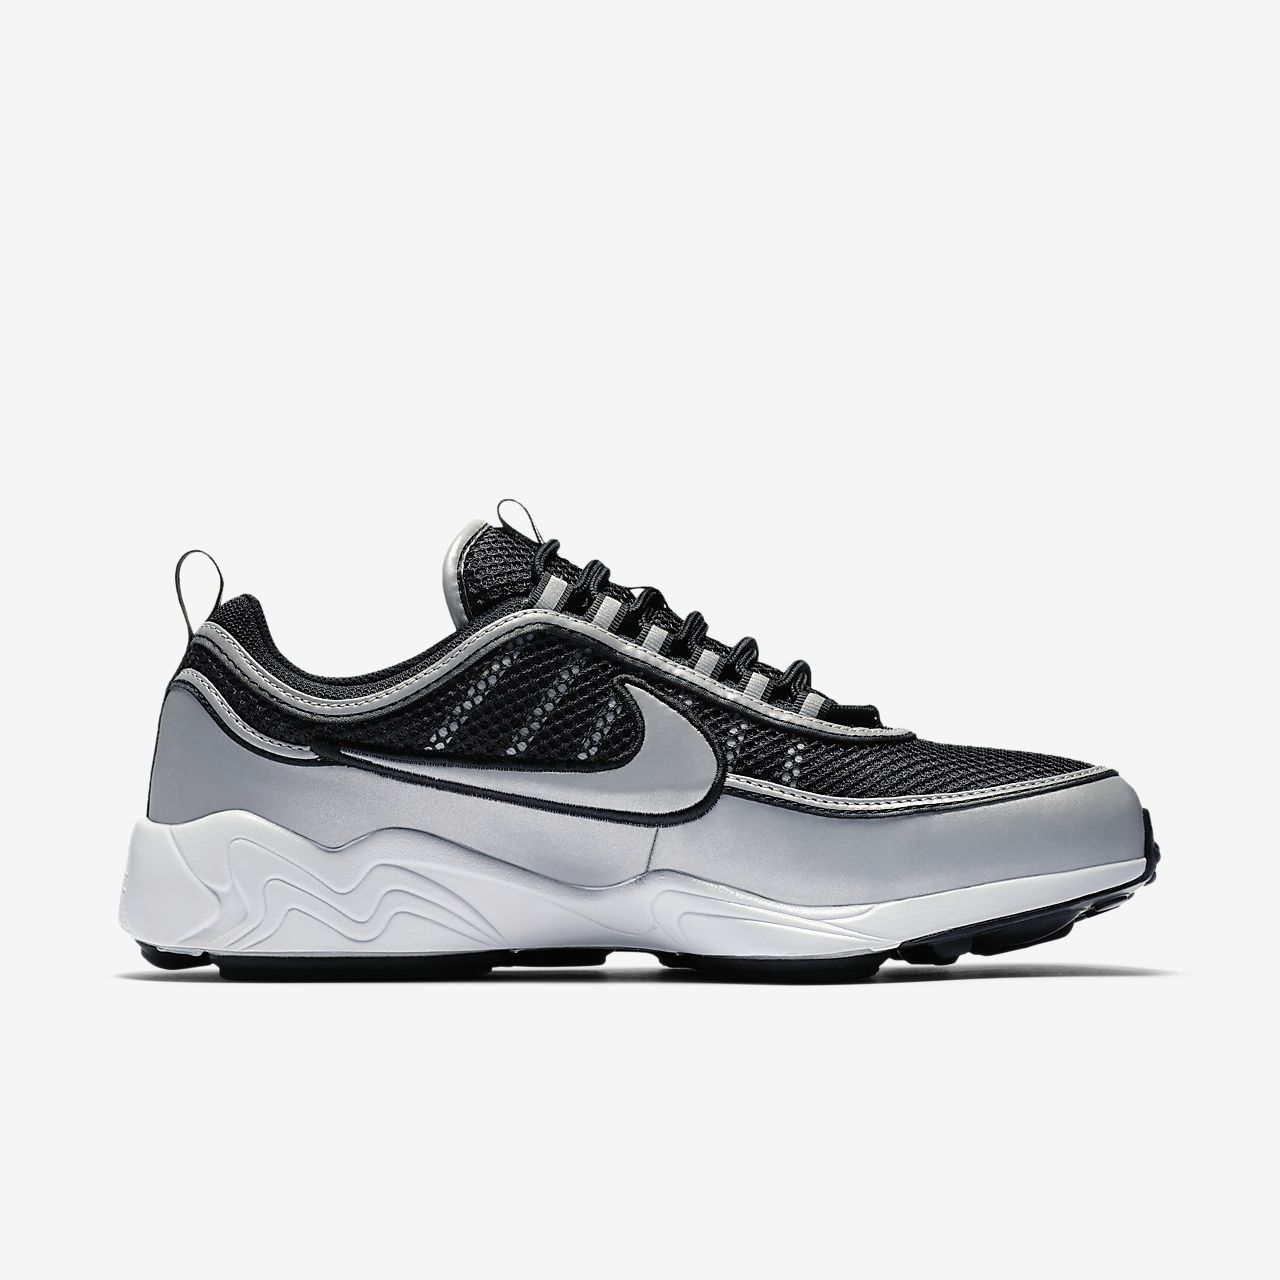 Découvrez Populaire Nike Air Zoom Spiridon Homme Chaussure Pas Cher Royer3602045